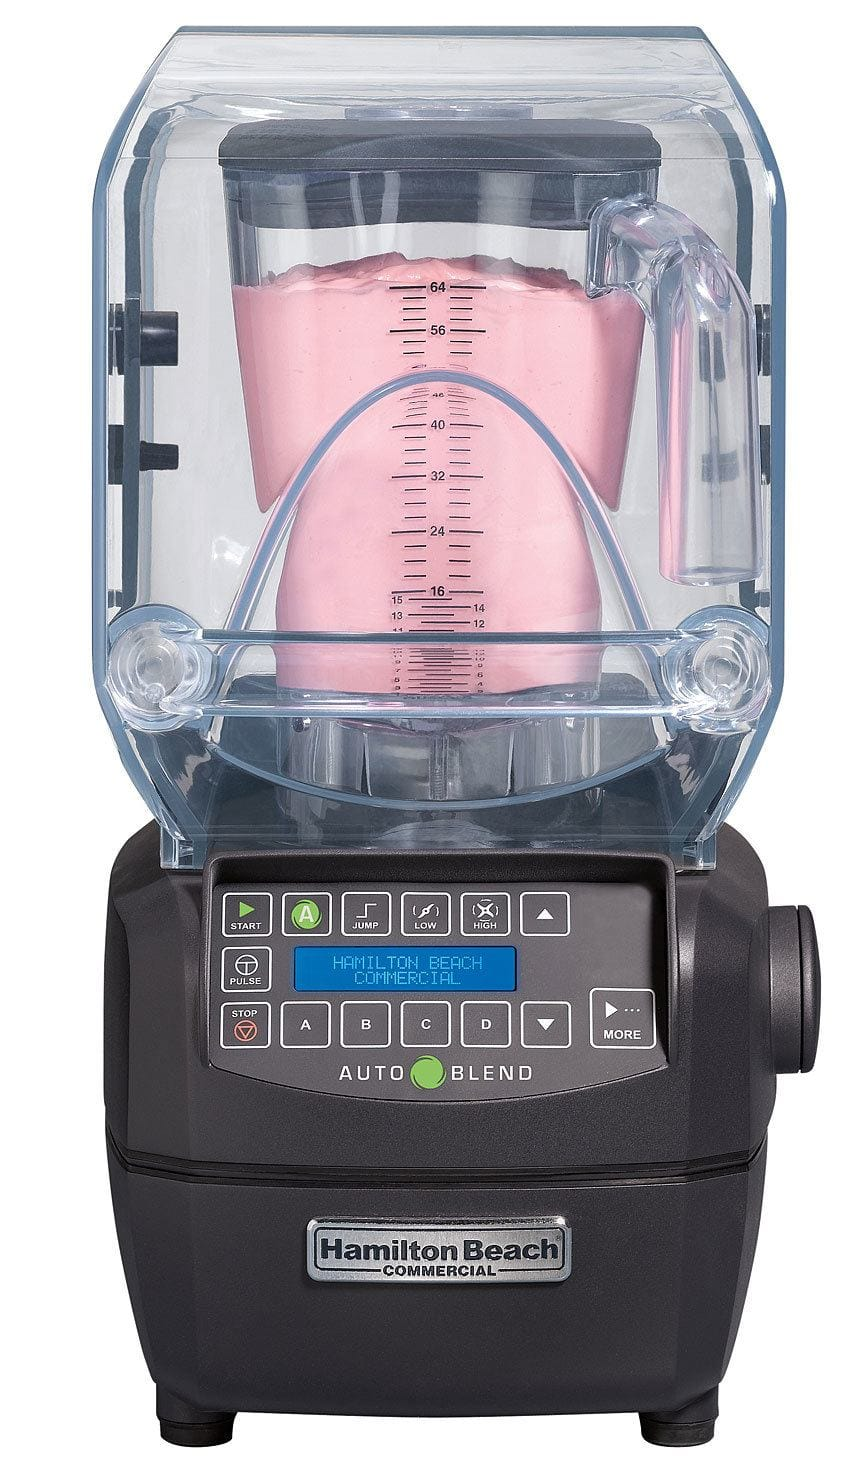 Photo of the Hamilton Beach commercial blender with a smoothie